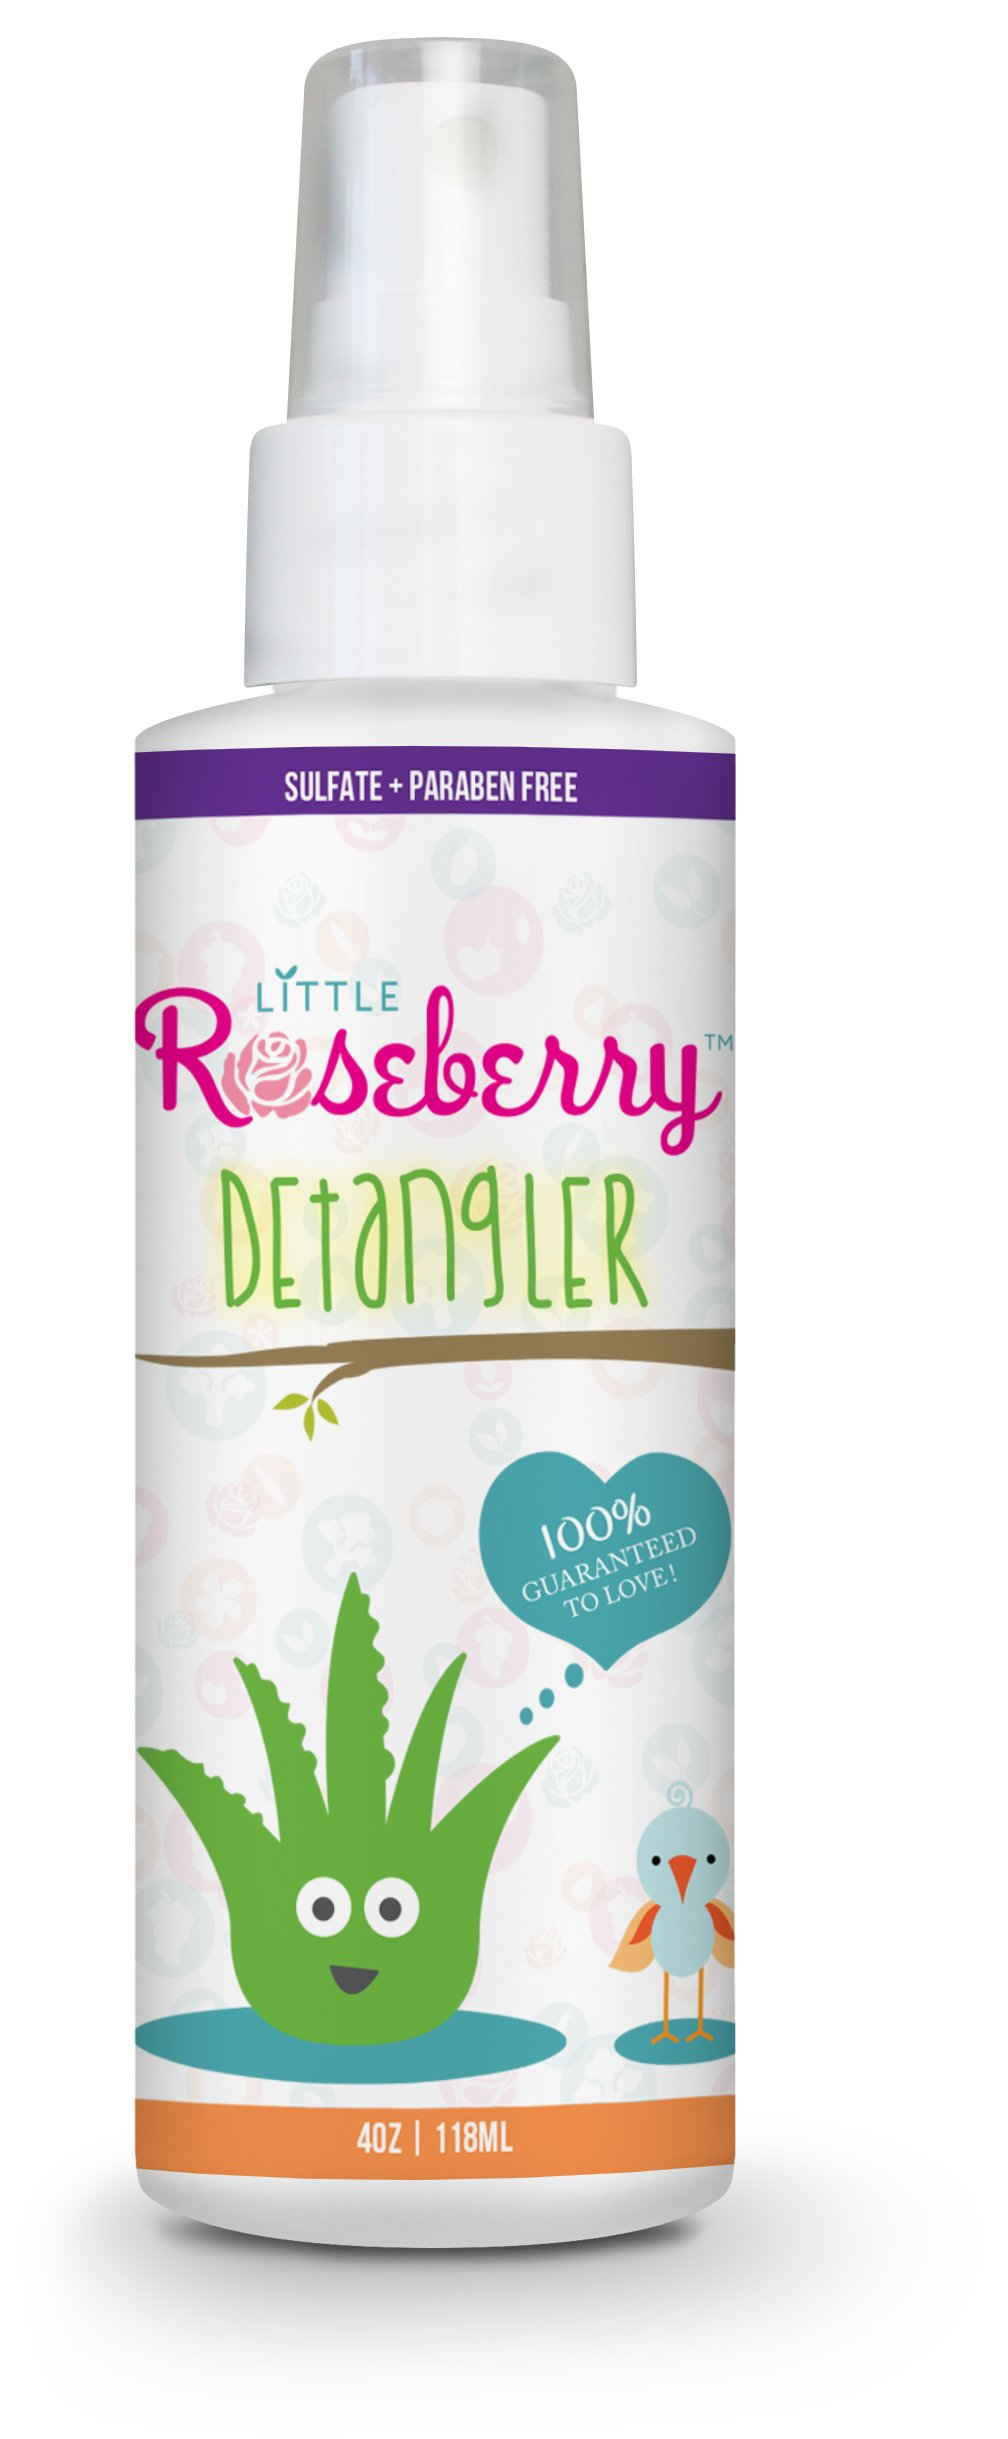 Hair Detangler Spray for Kids. Made with Organic Aloe Vera Juice and Natural Vitamins to Hydrate. Organic Detangler and Leave In Conditioner for Children & Adults. No Chemicals or Fragrance. USA Made. by Little Roseberry